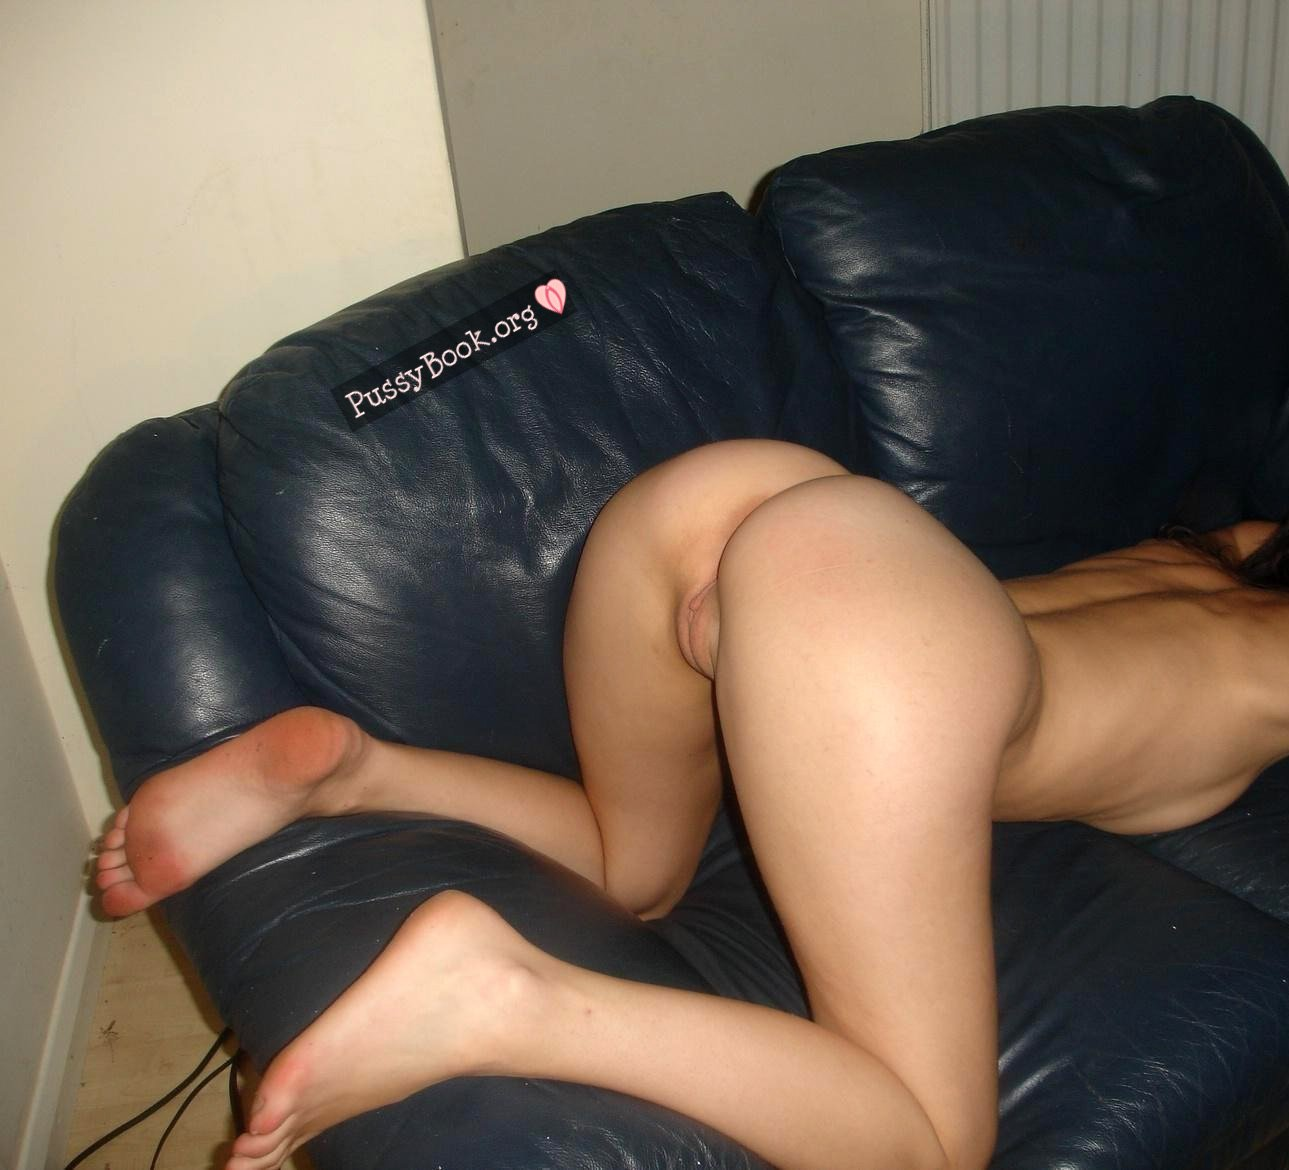 Embarrassed asian girl